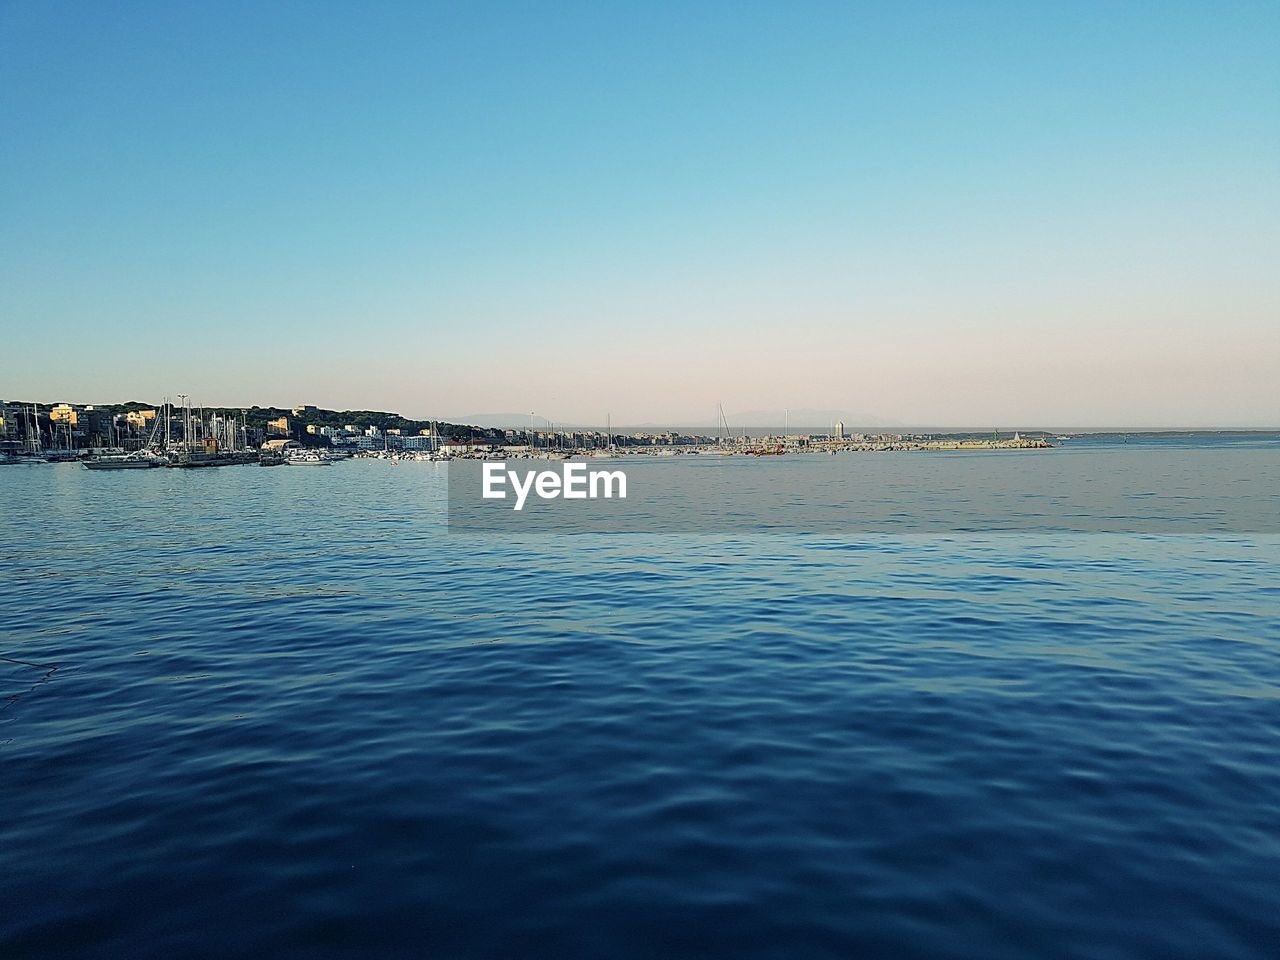 SCENIC VIEW OF SEA AND CITYSCAPE AGAINST CLEAR BLUE SKY